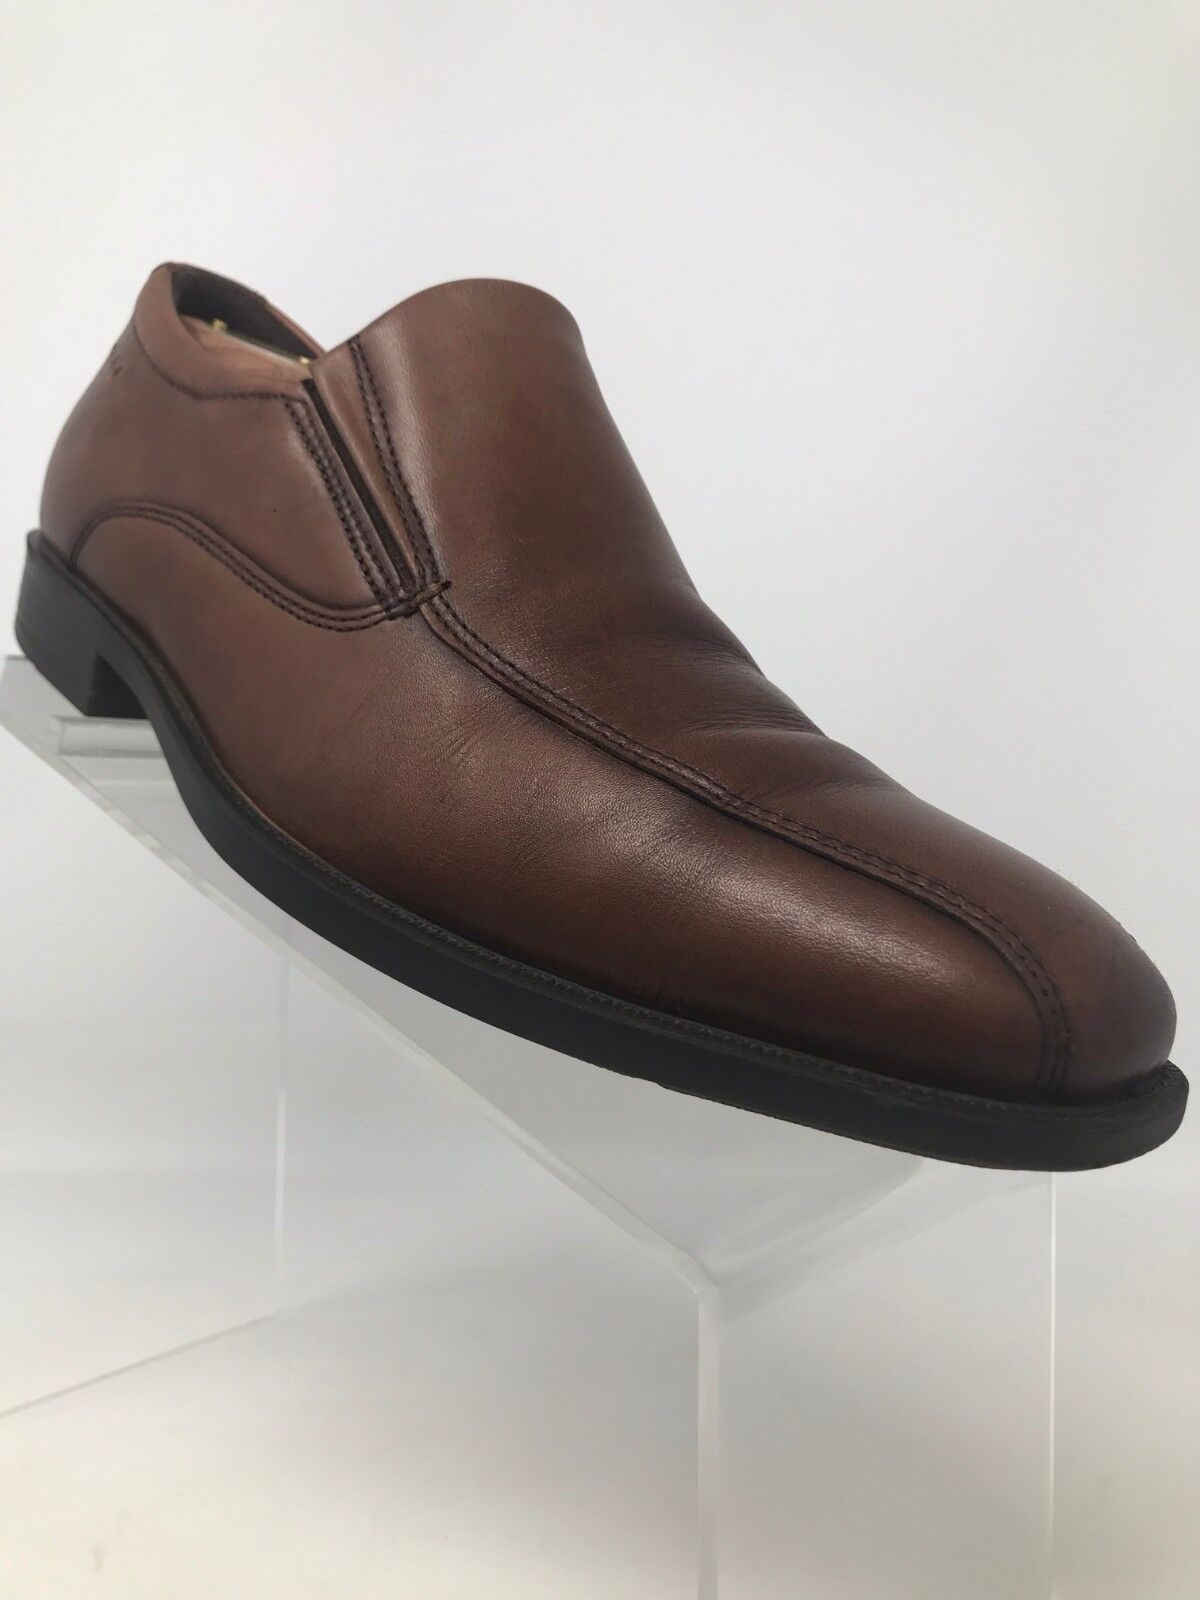 Ecco Brown Leather Loafer Slip On Bicycle Toe Men US 7